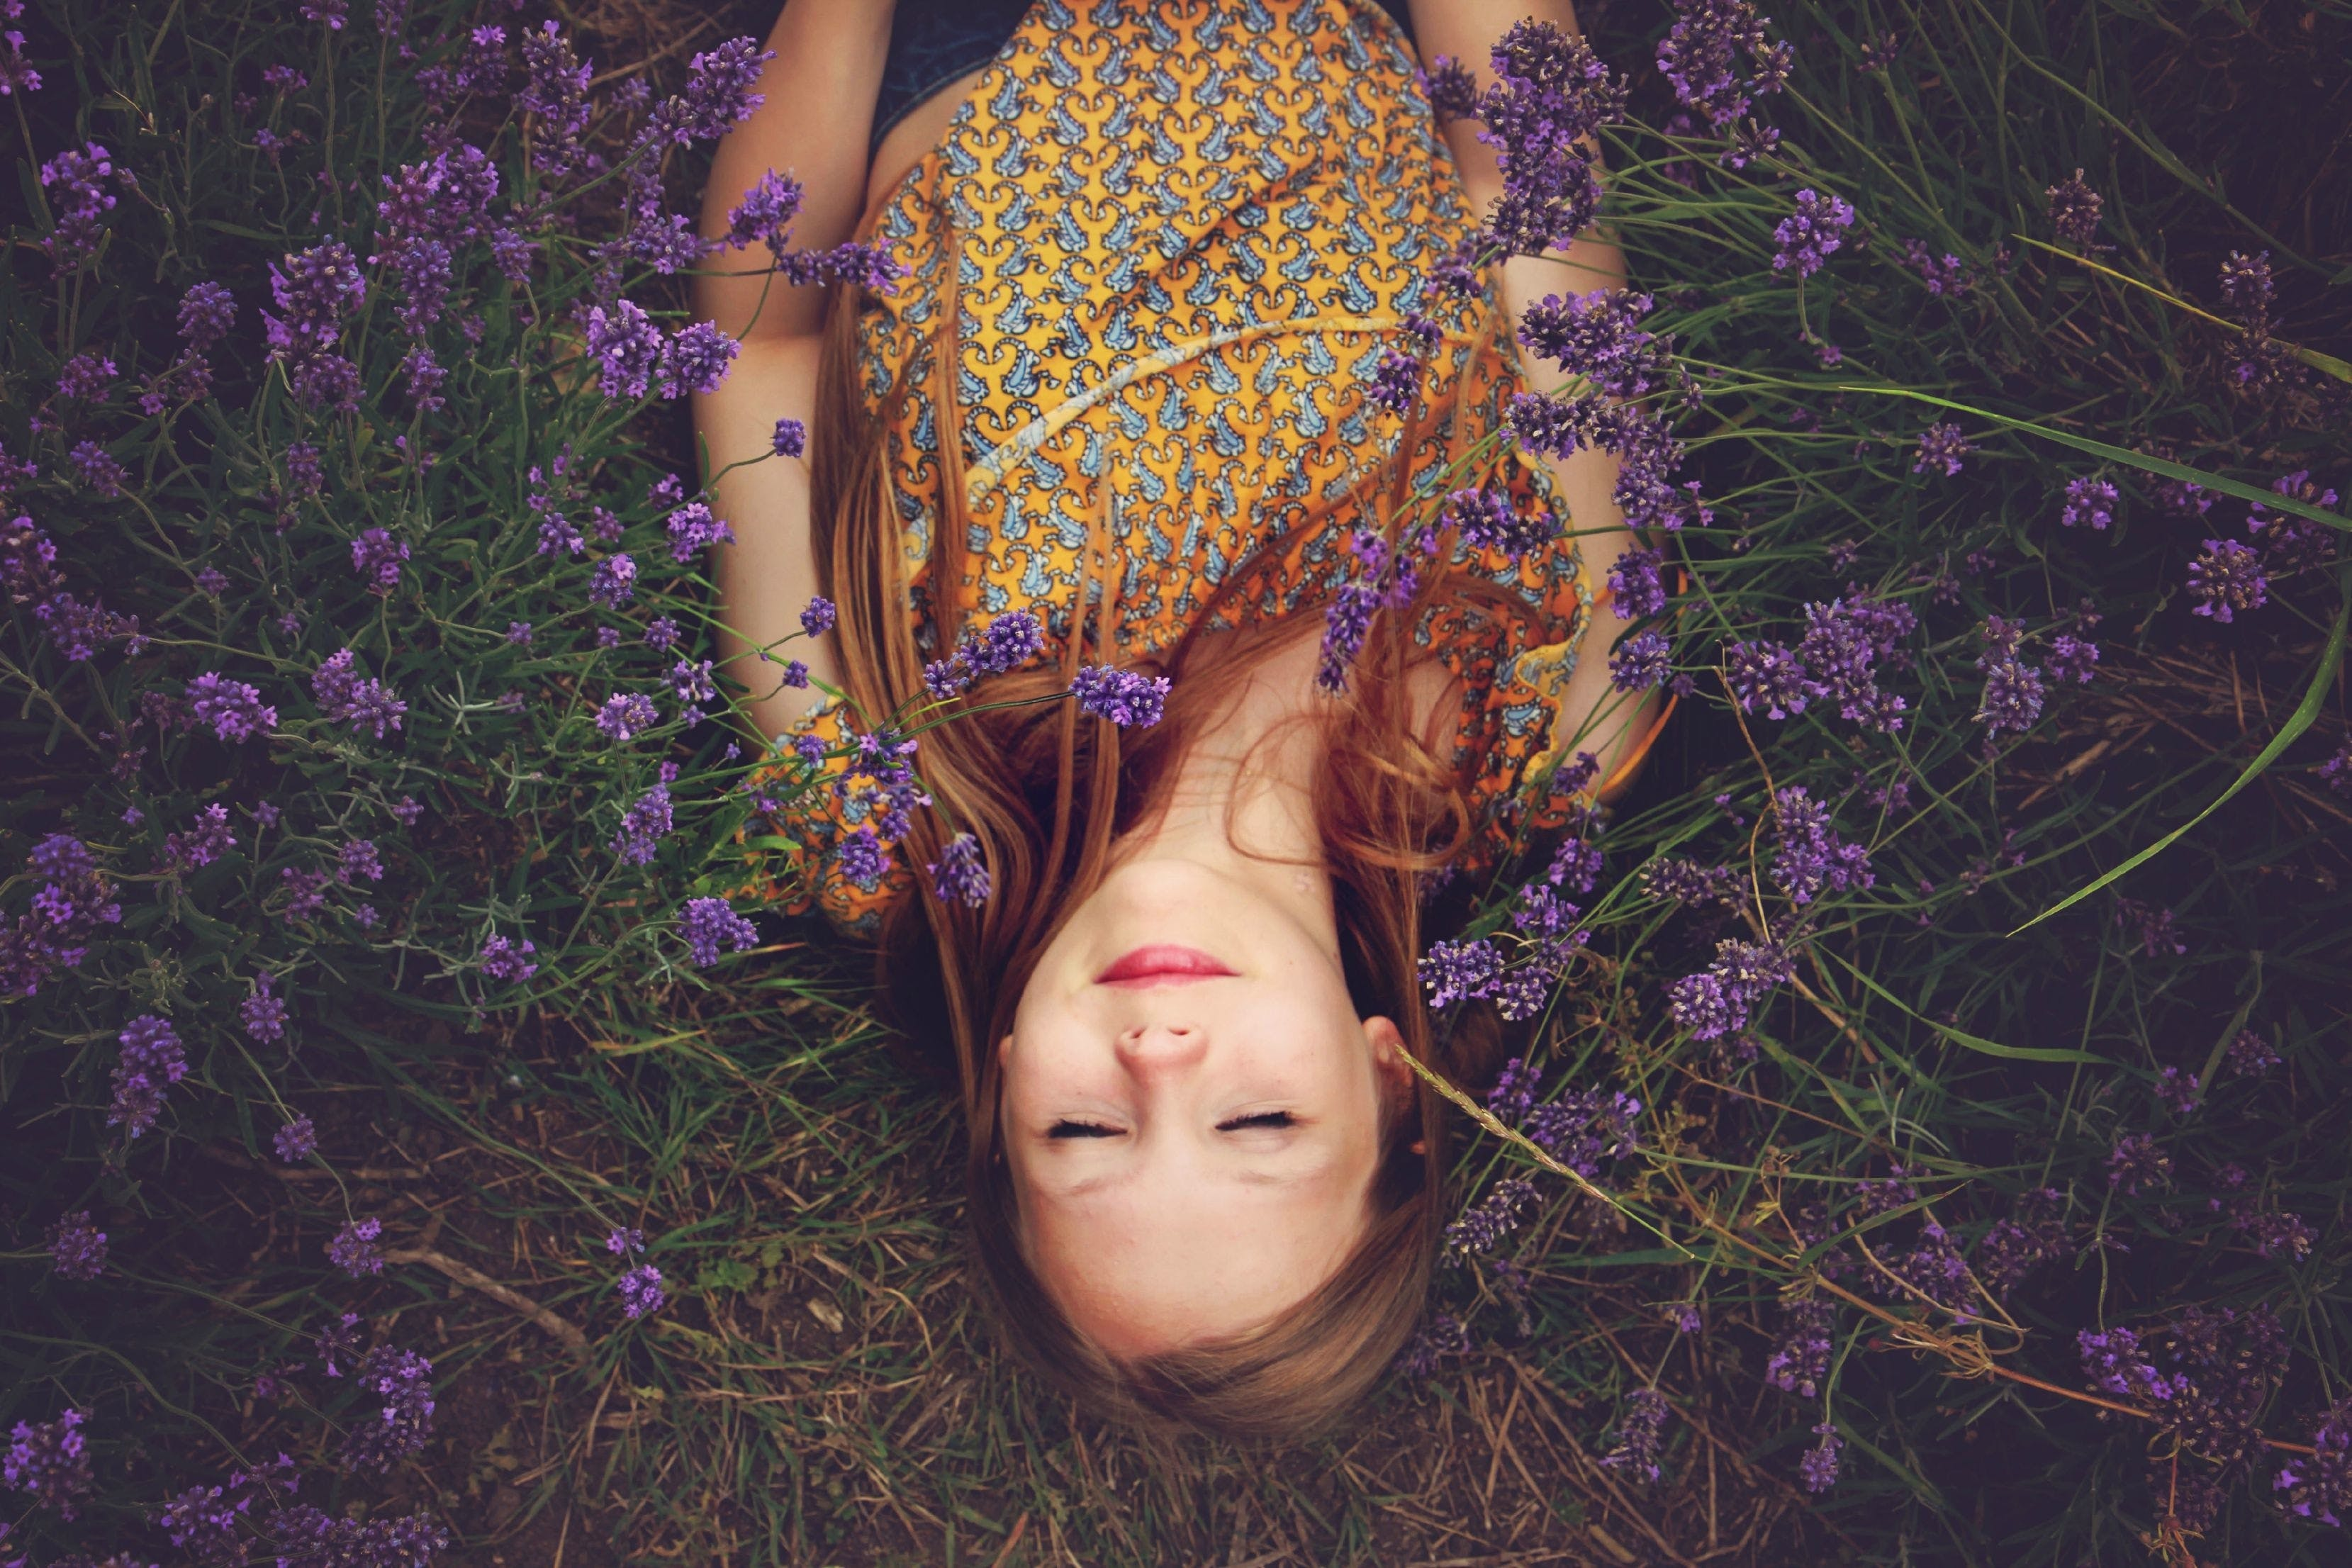 Woman in Yellow Tank Top Lying on Grass Beside Purple Leaf Plant during Daytime